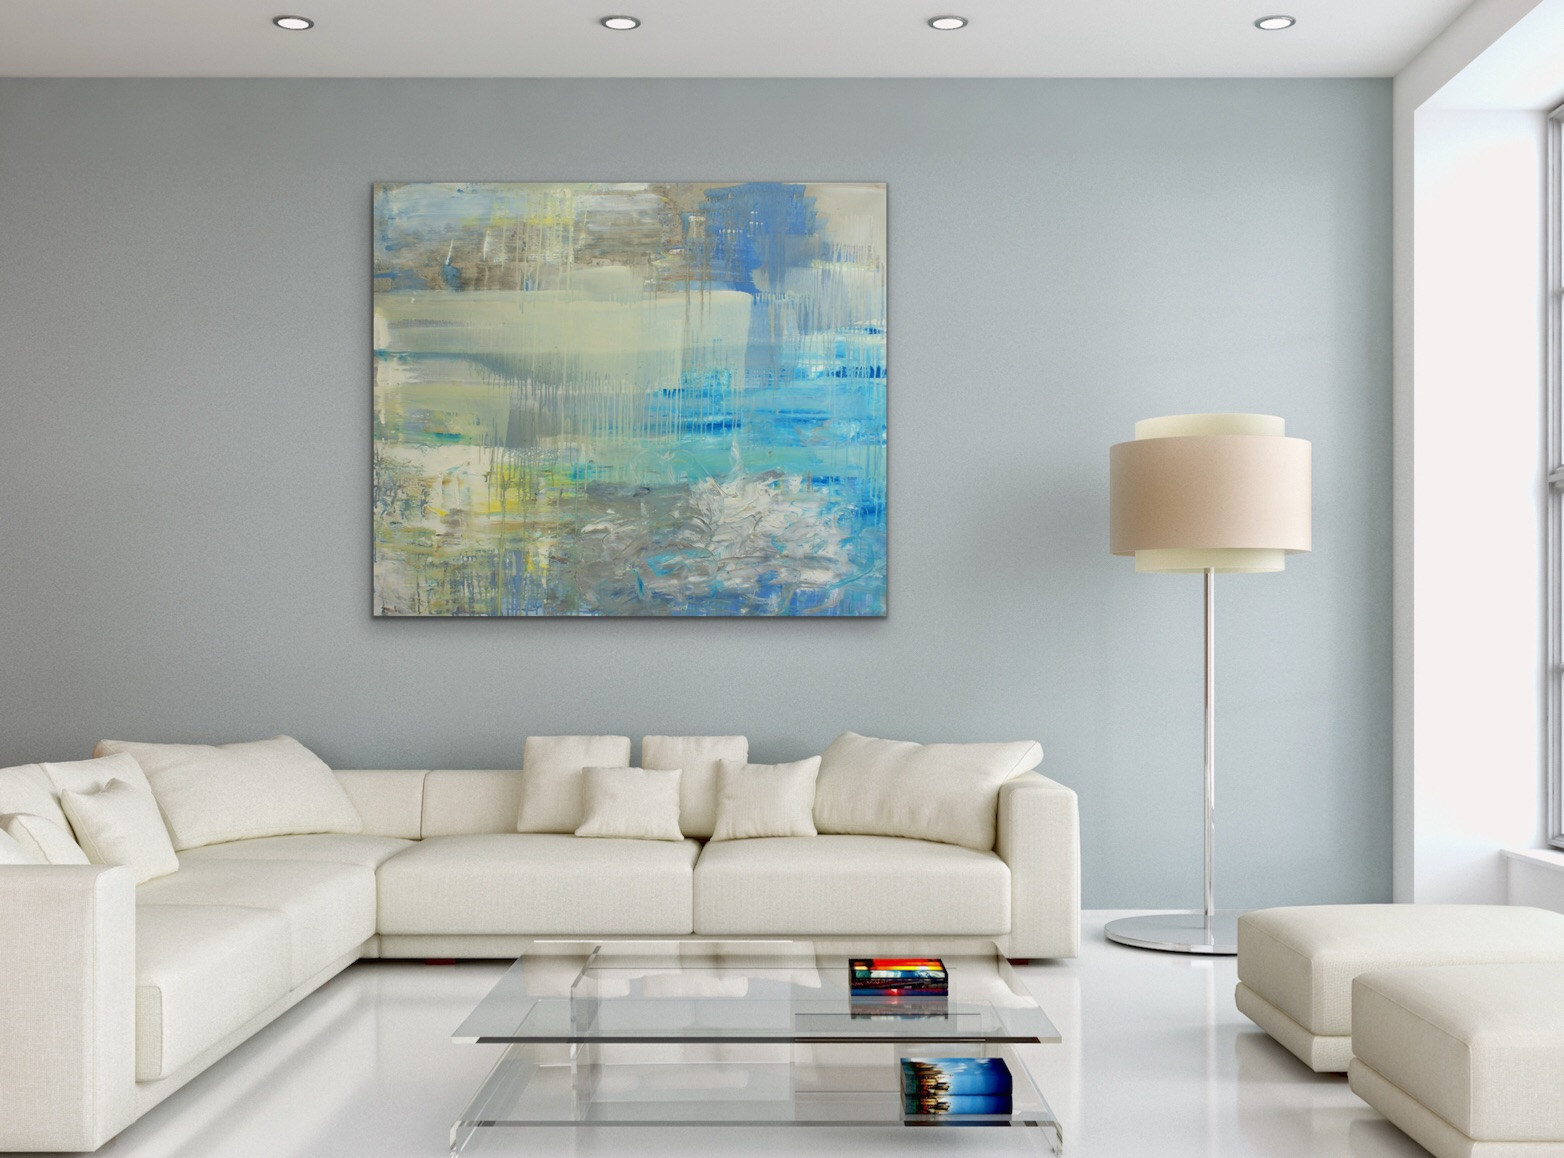 SOLD - Echoes of Summer, in a room